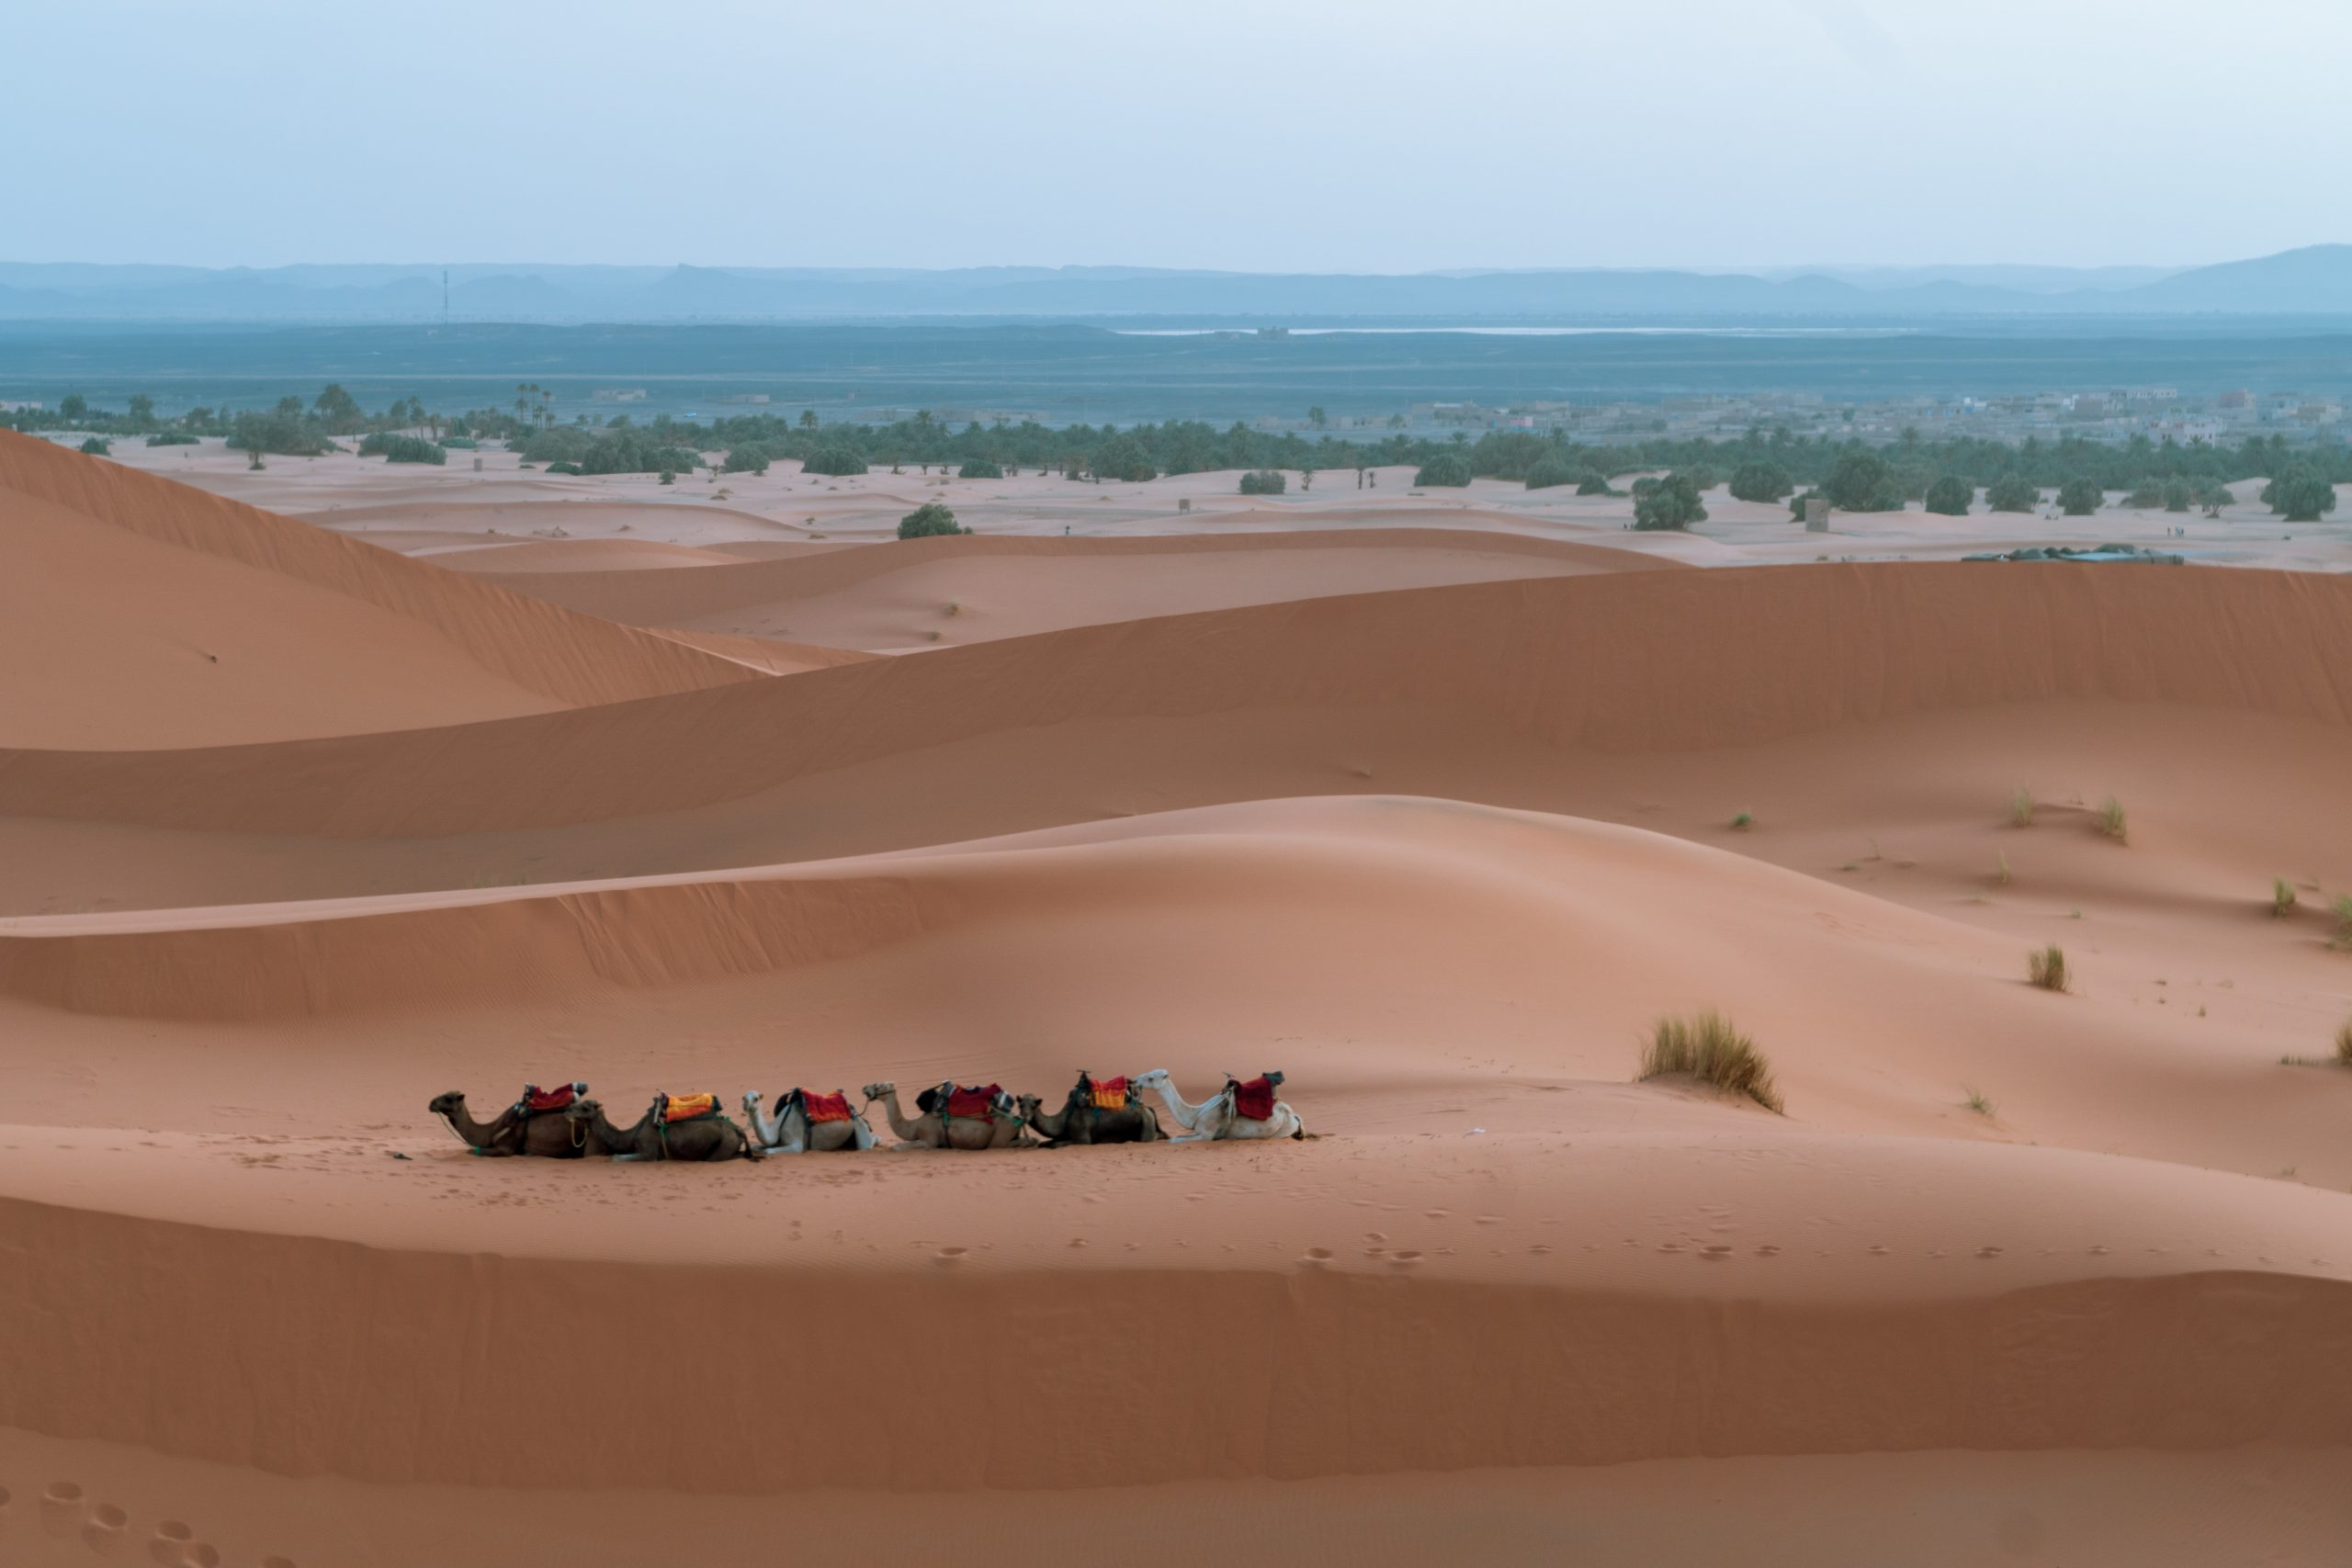 gallery image for Highlights of Morocco